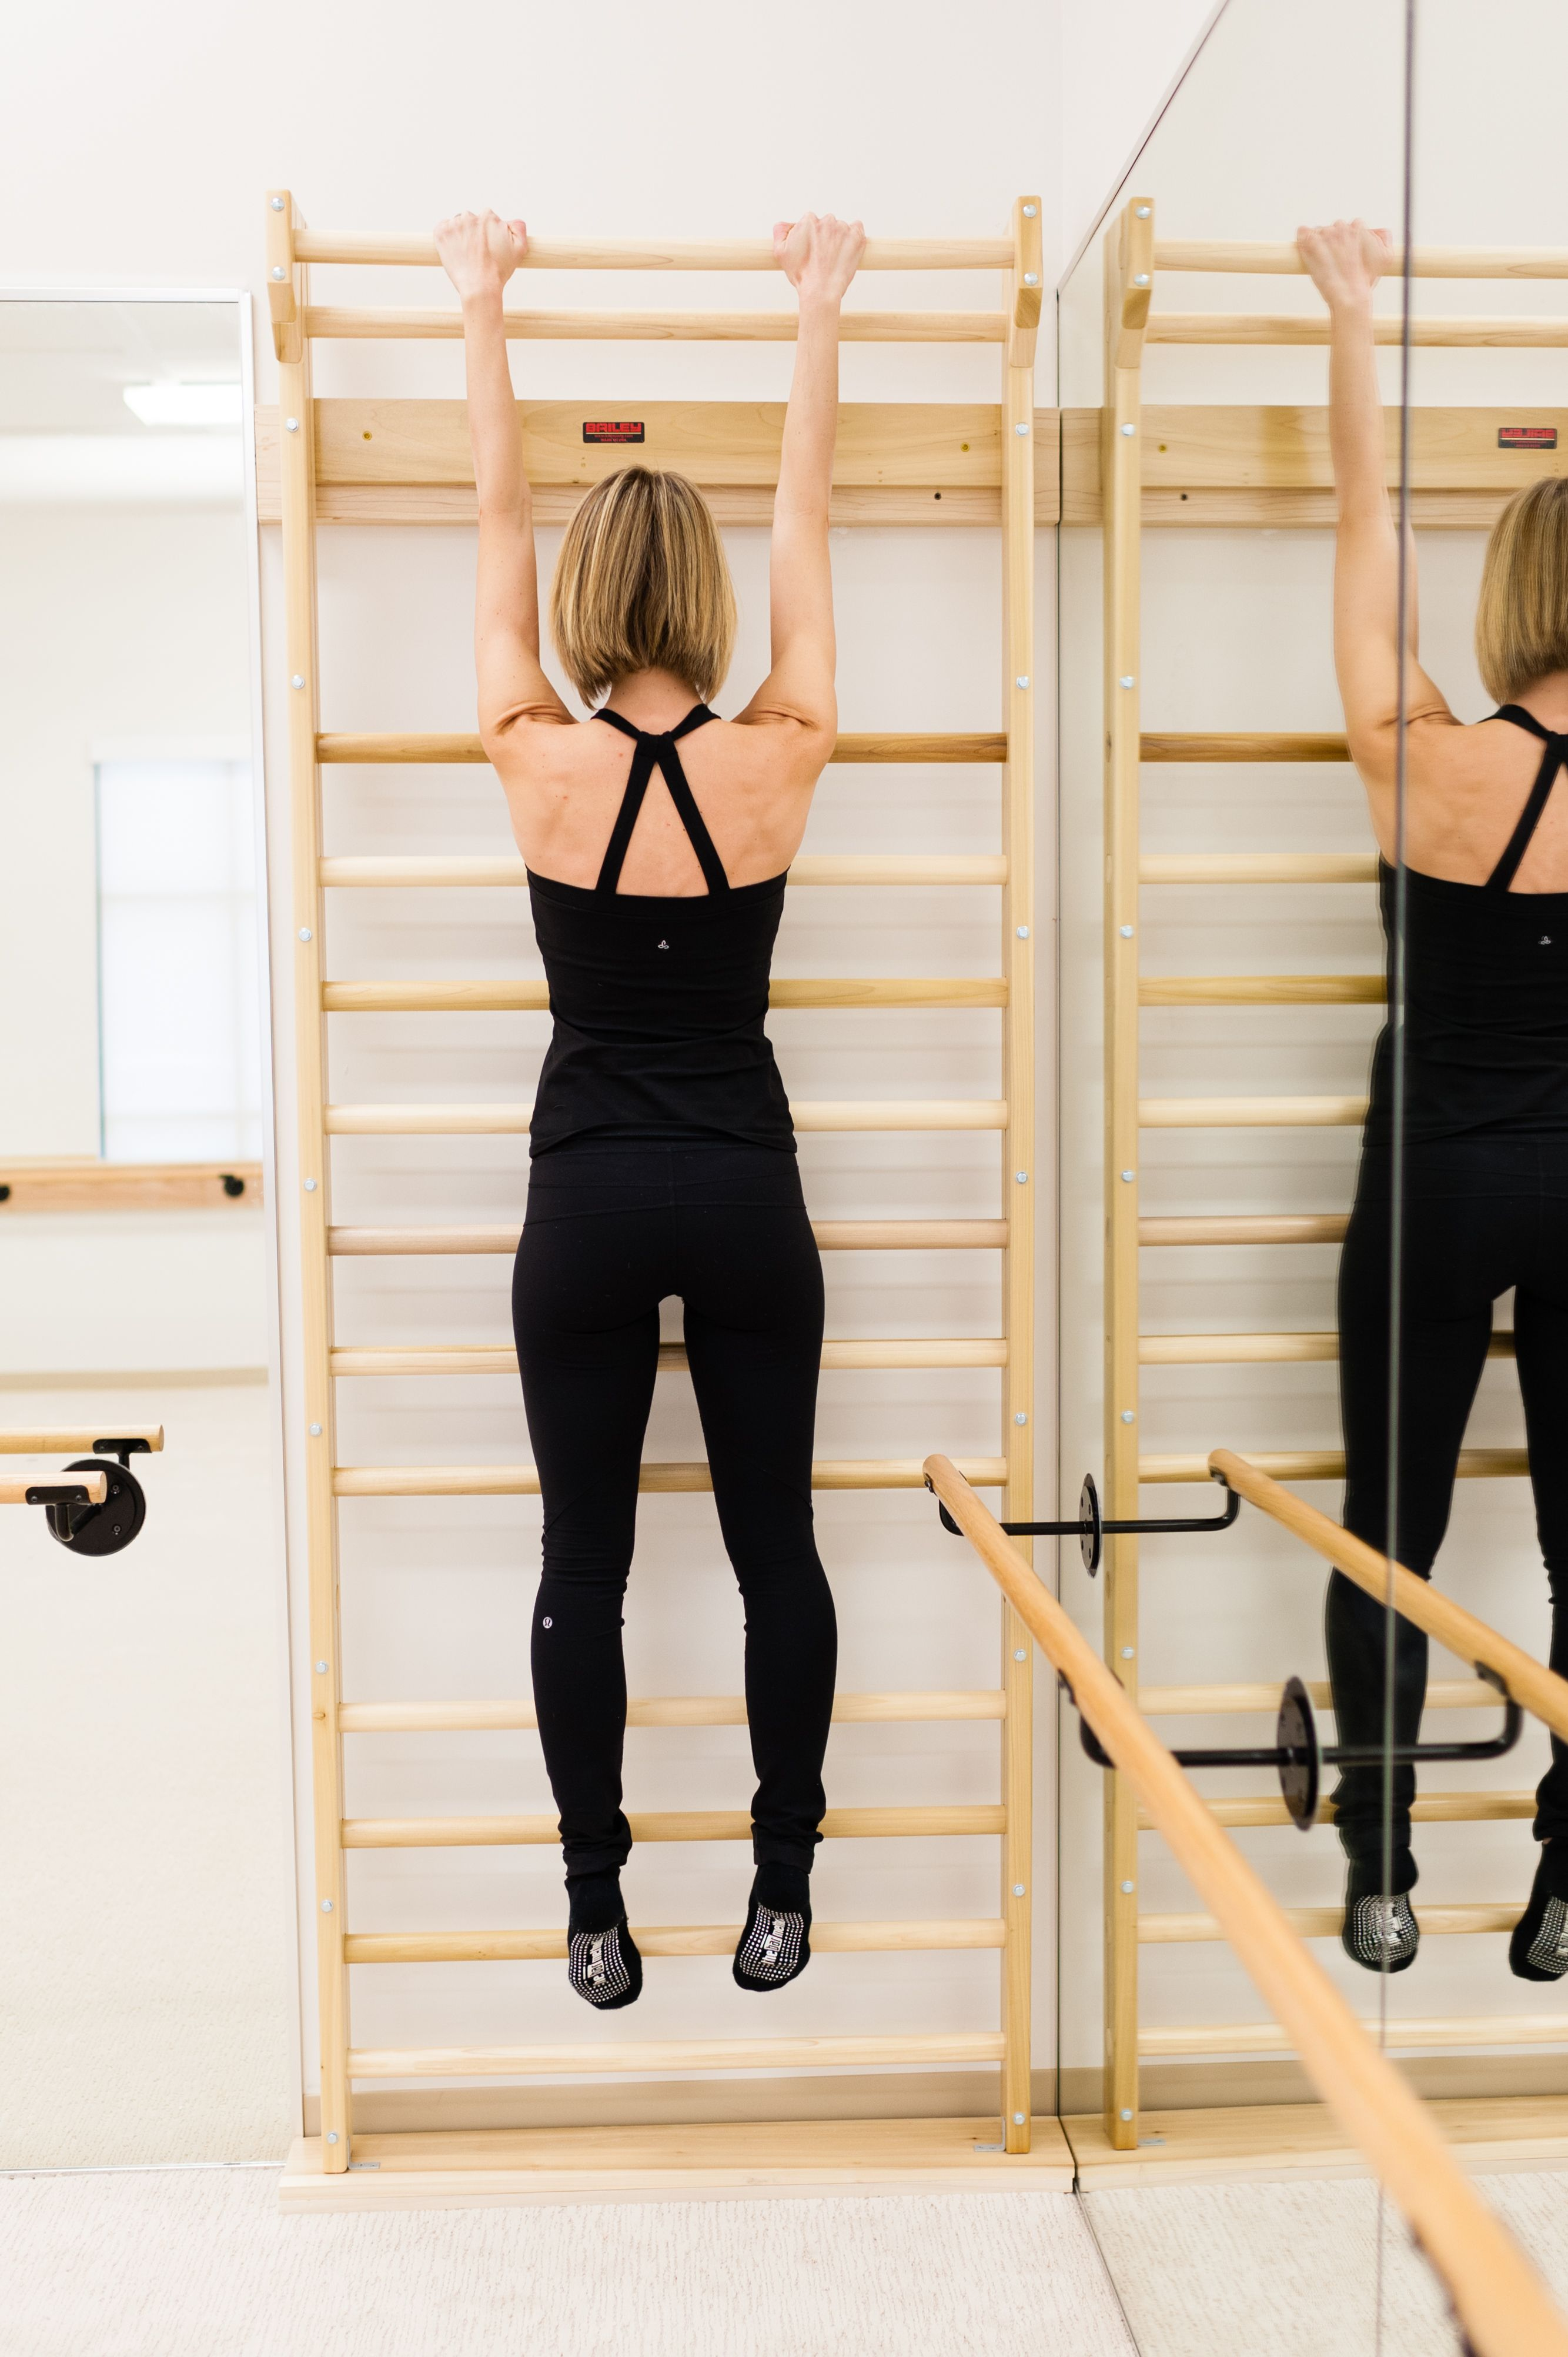 Hang 1 to 2 minutes to increase your back flexibility and